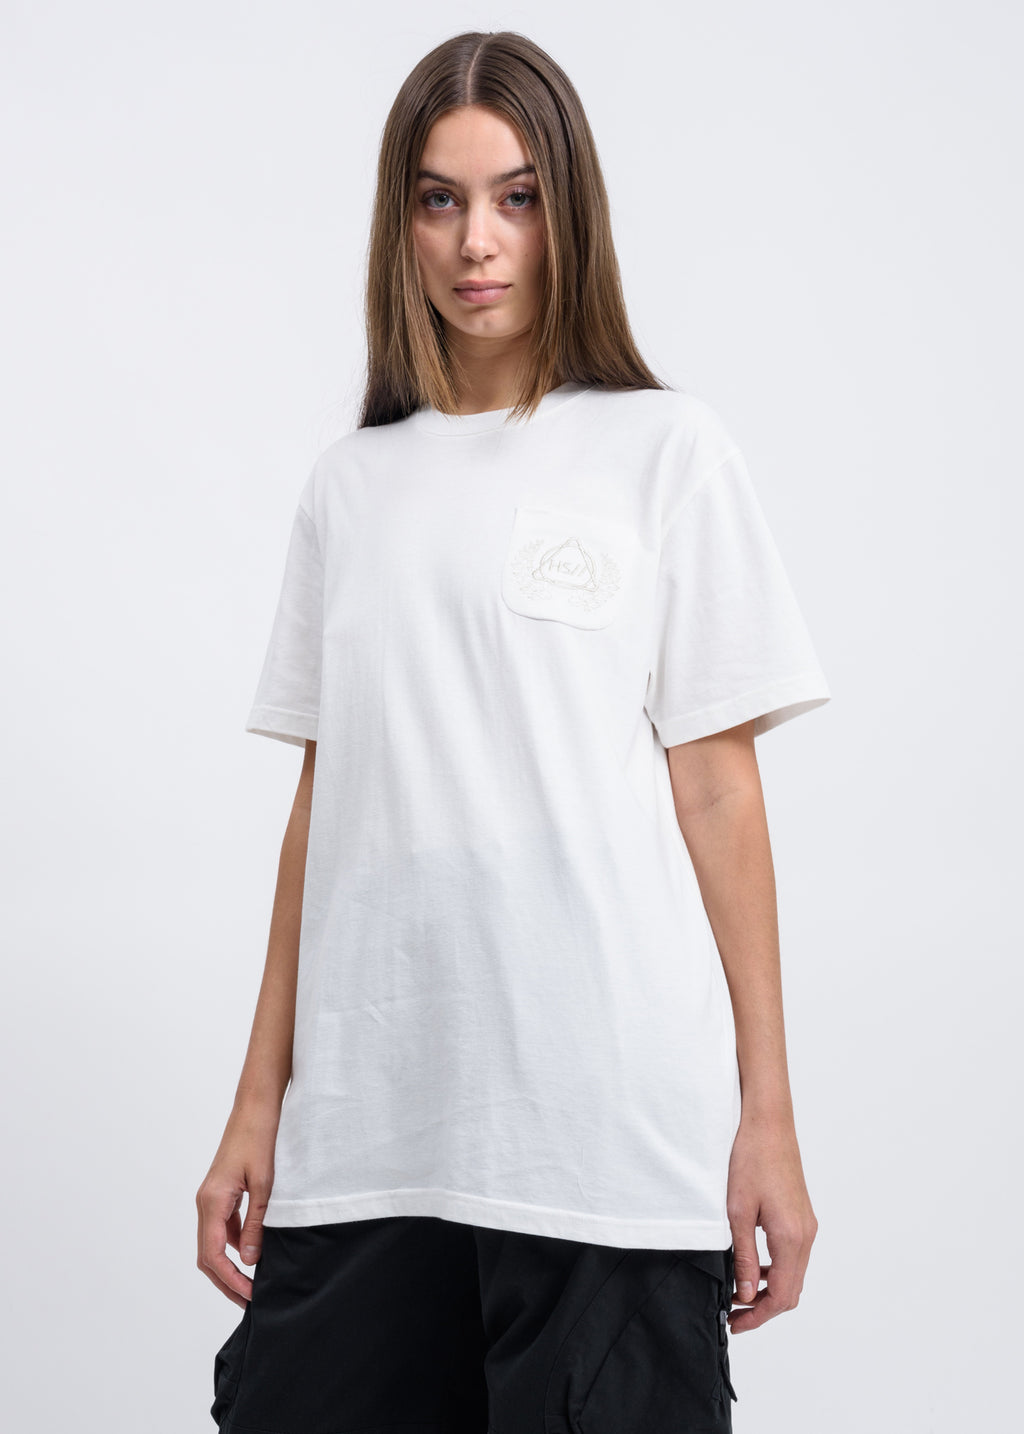 Hyein Seo, White Emblem T-shirt, 017 Shop